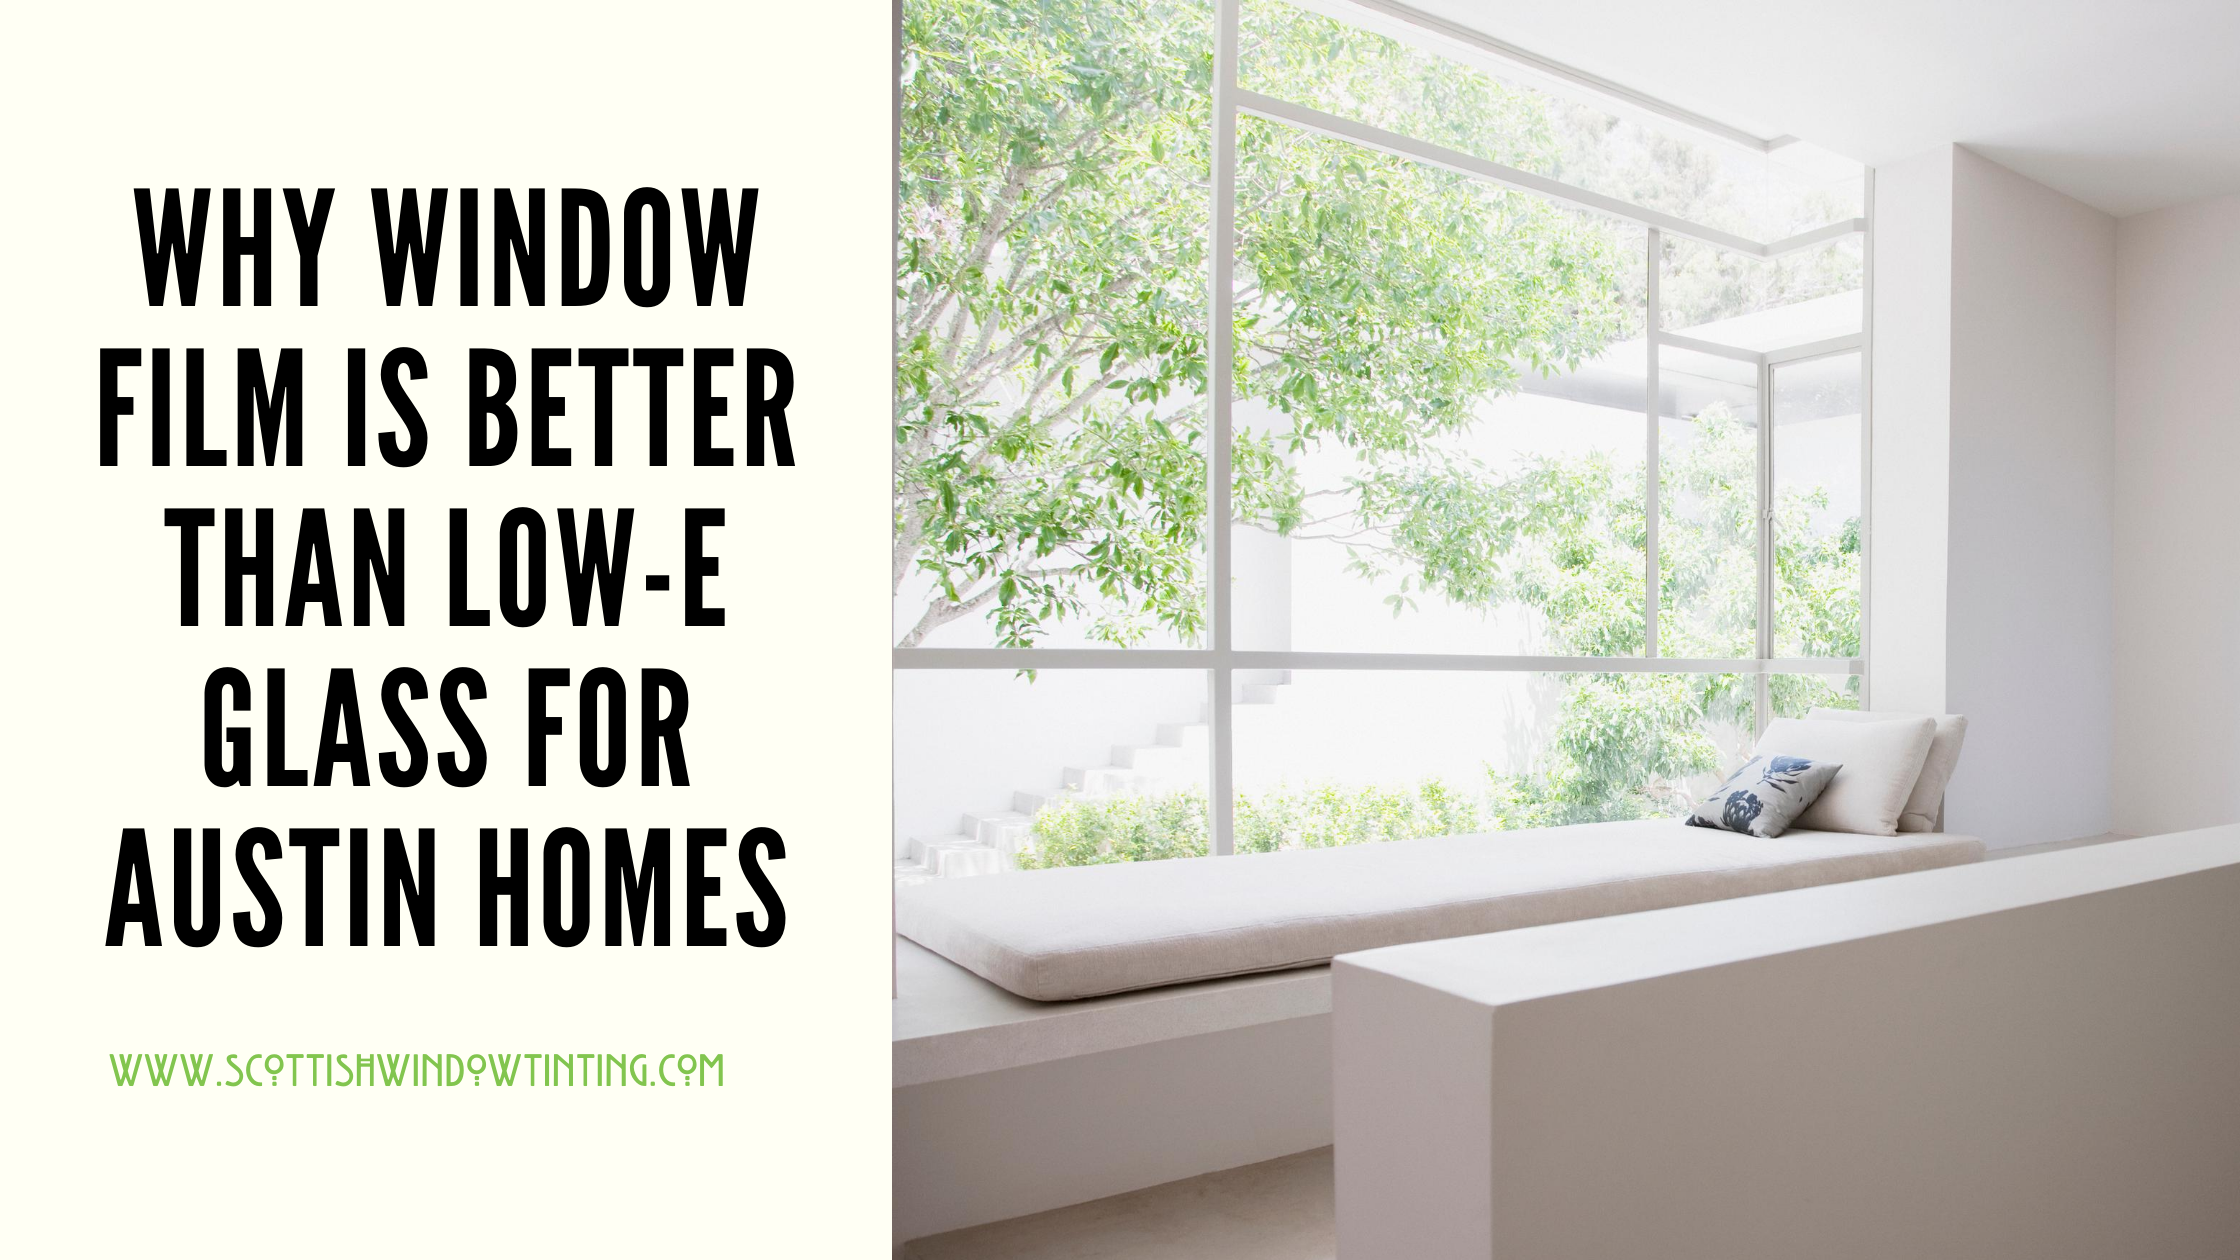 Why Window Film is Better Than Low-E Glass For Austin Homes